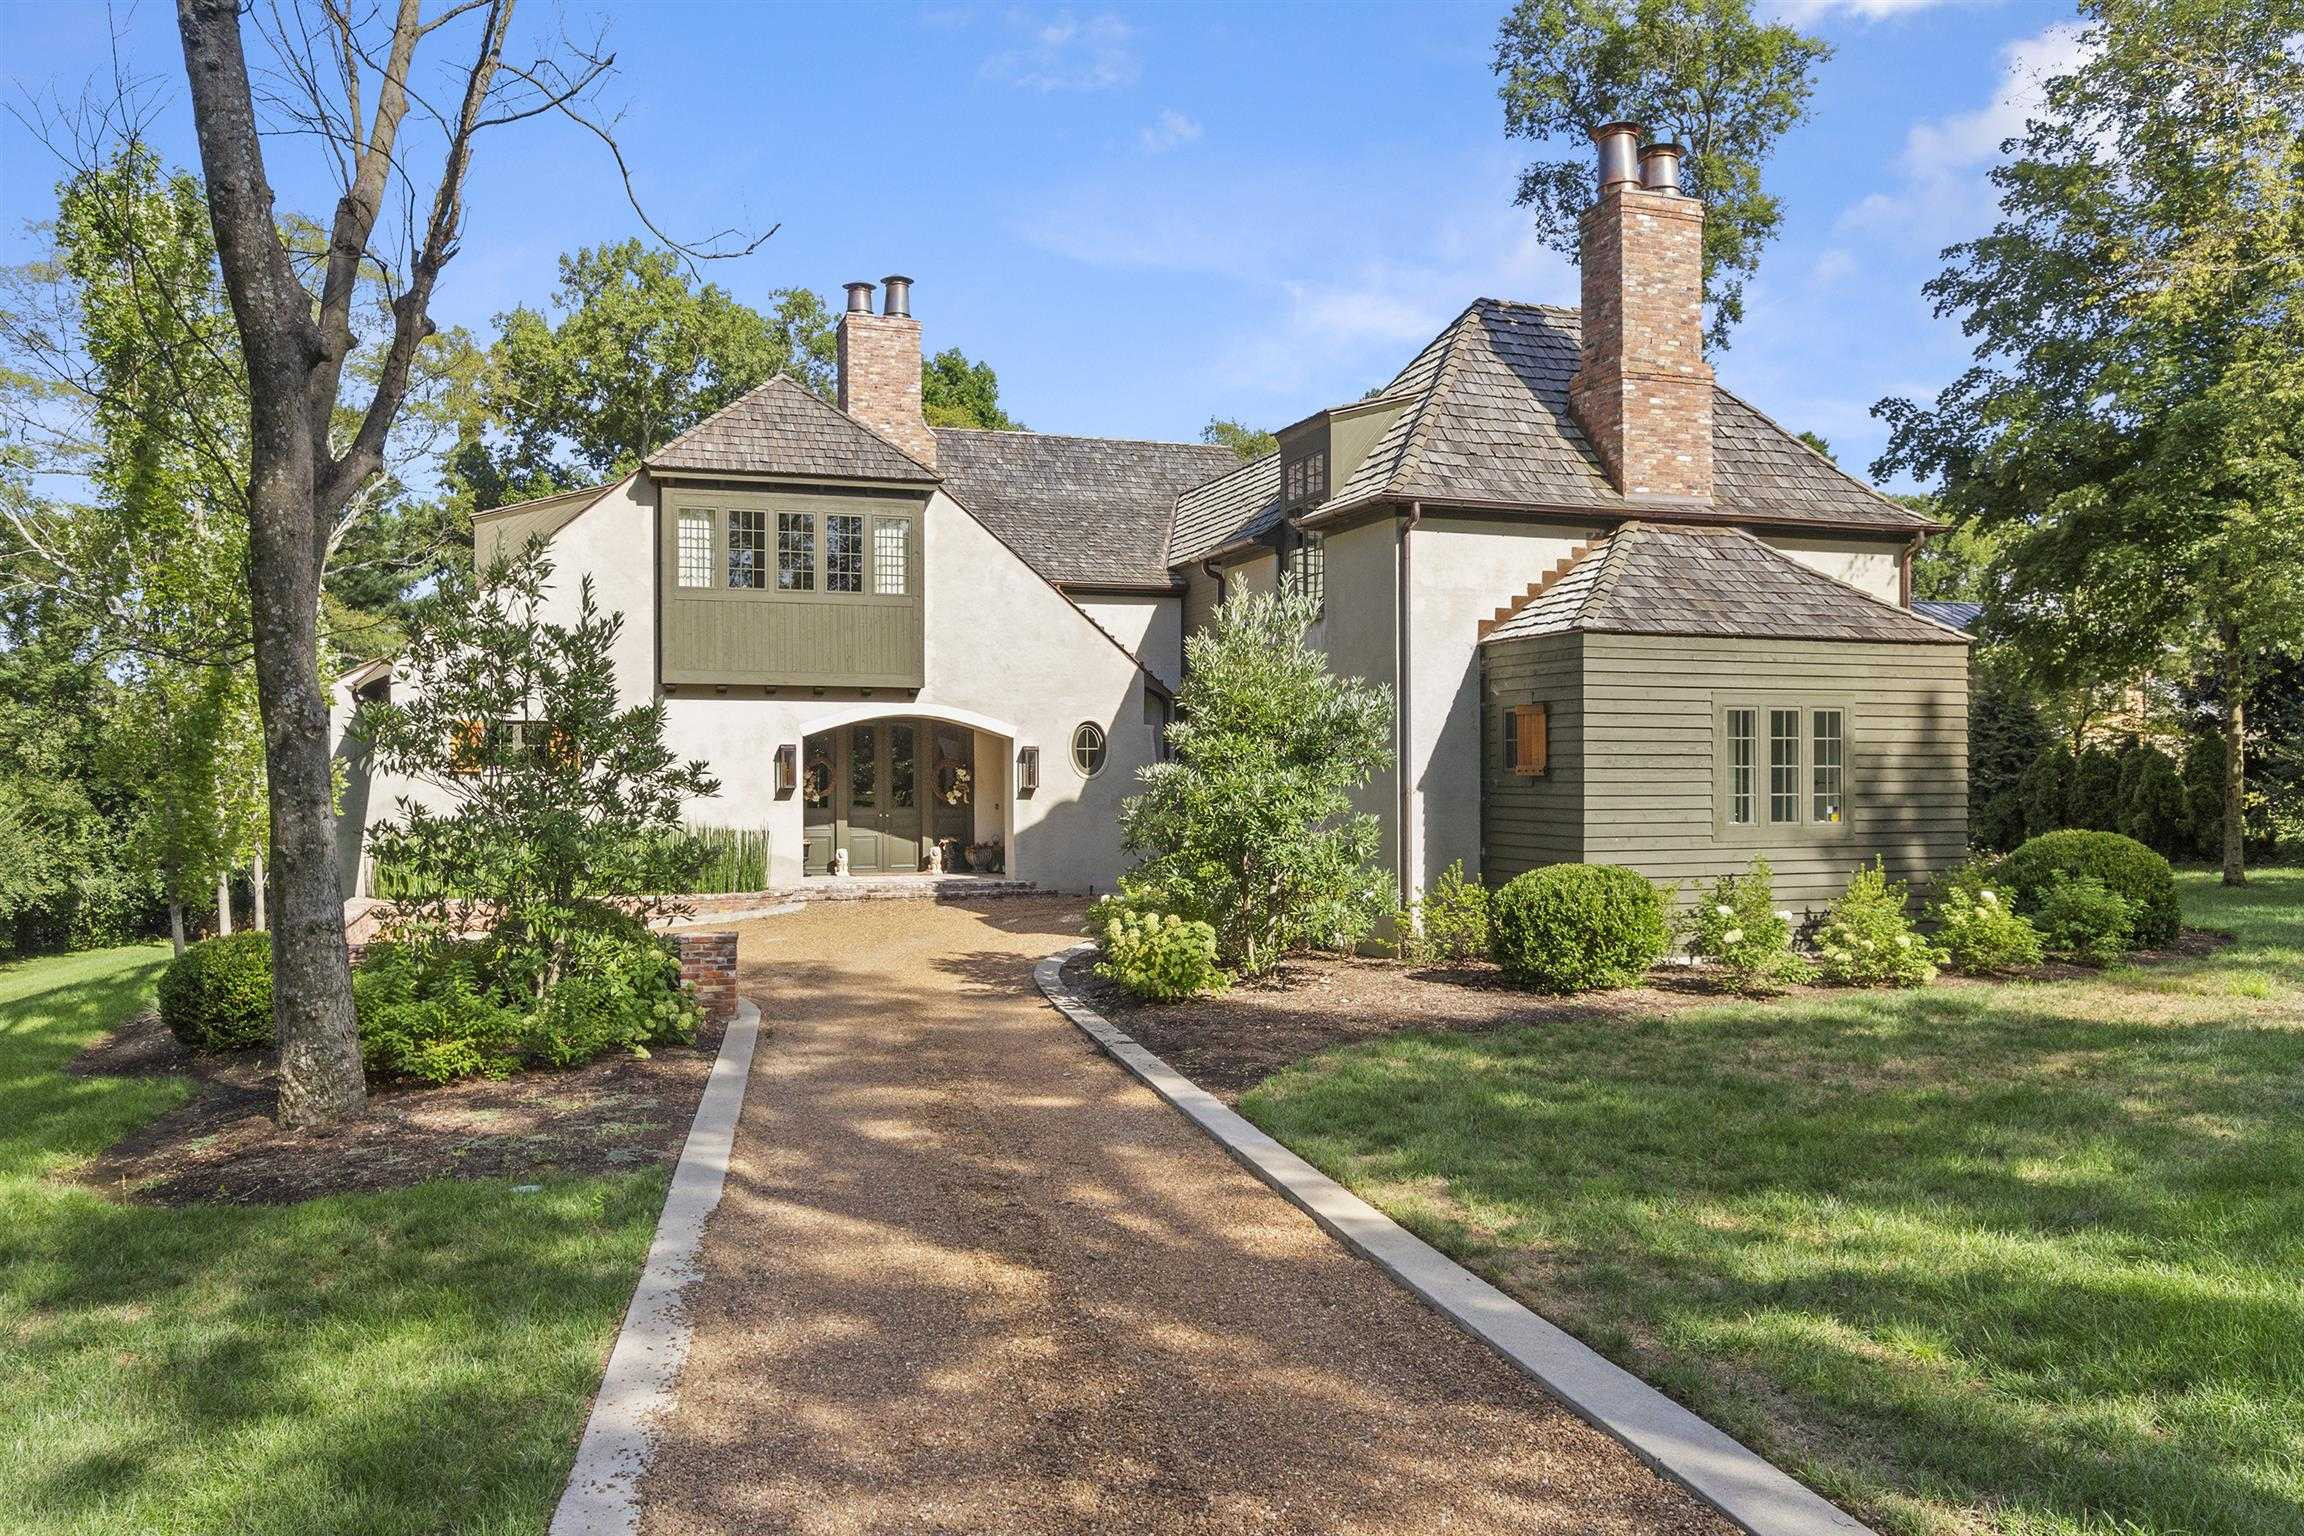 $3,600,000 - 6Br/9Ba -  for Sale in Belle Meade, Nashville